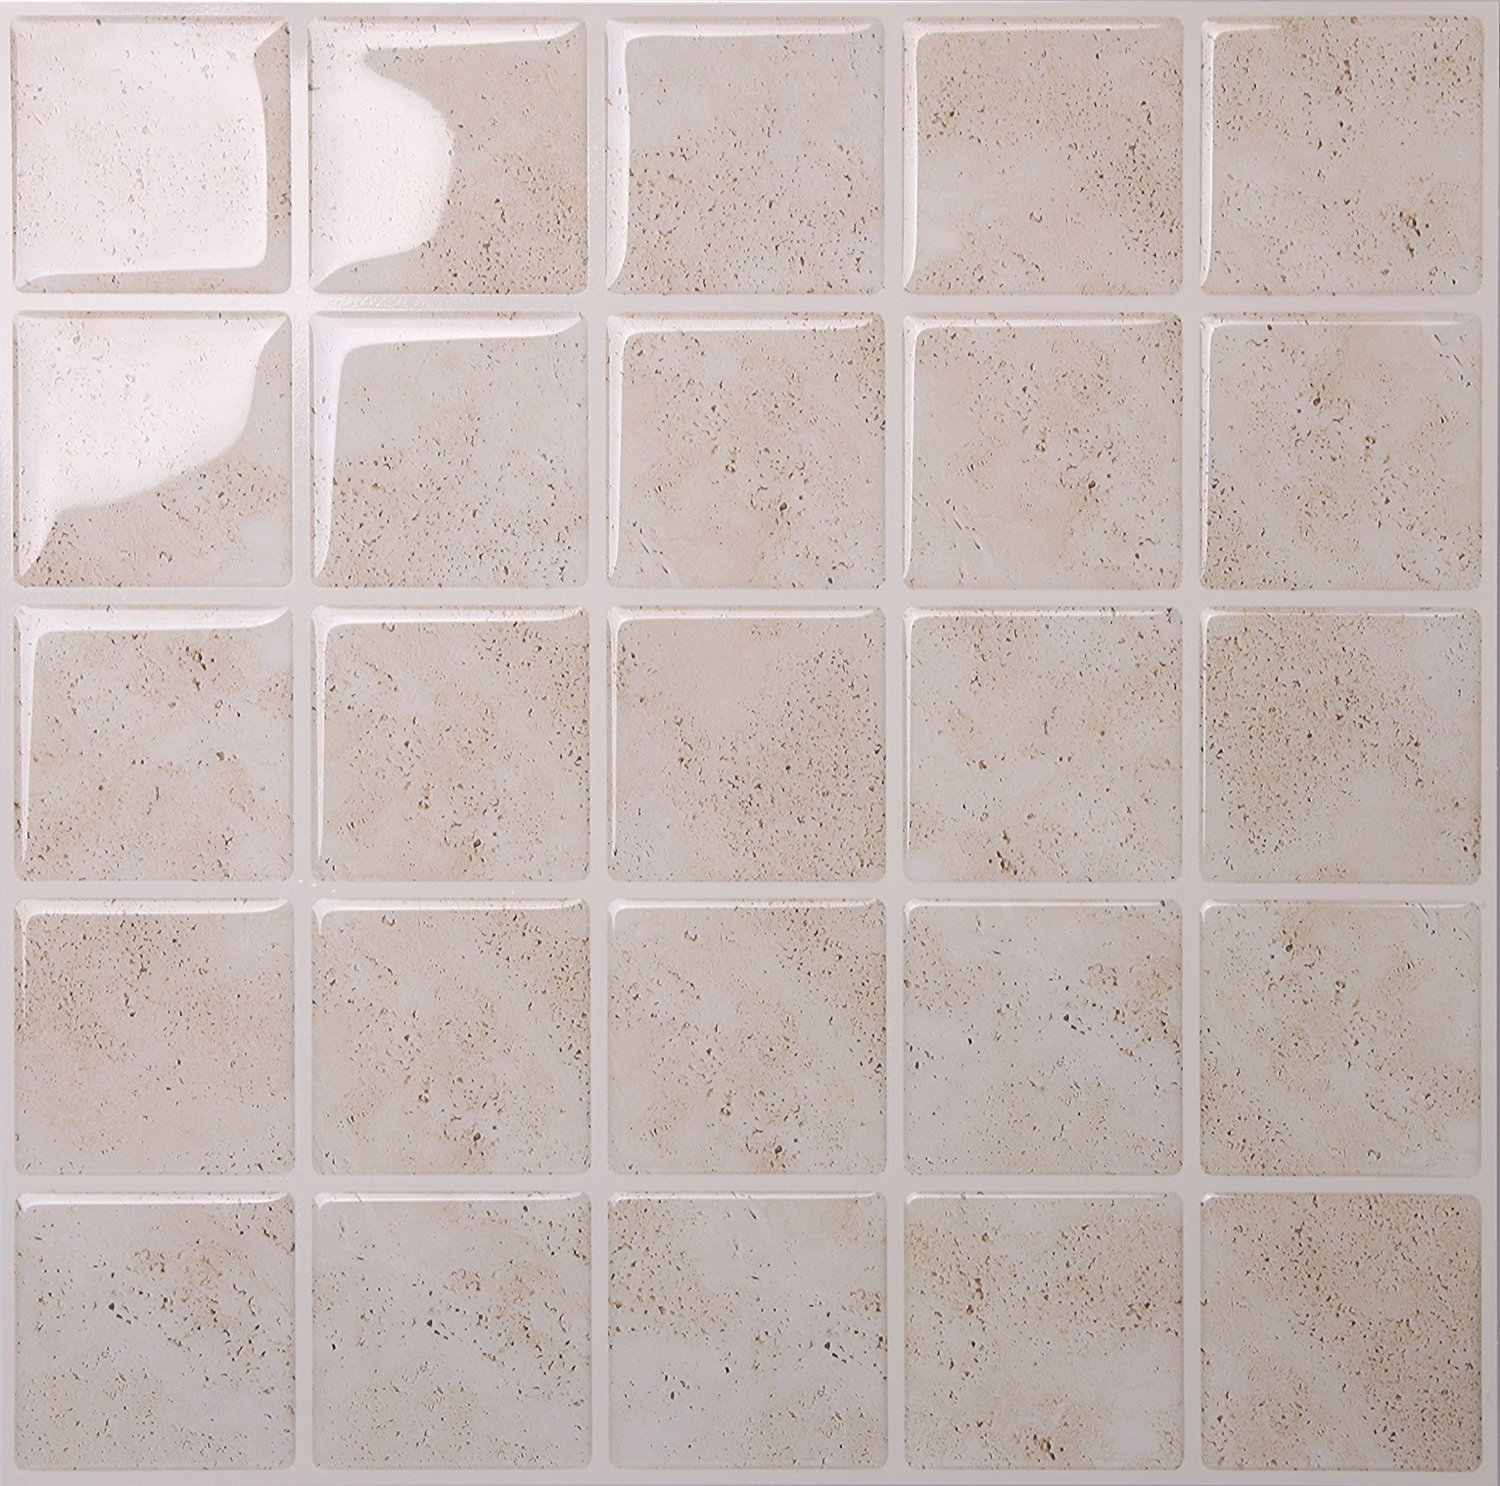 Tic Tac Tiles - Premium Anti Mold Peel and Stick Wall Tile Backsplash in Marmo Travertine